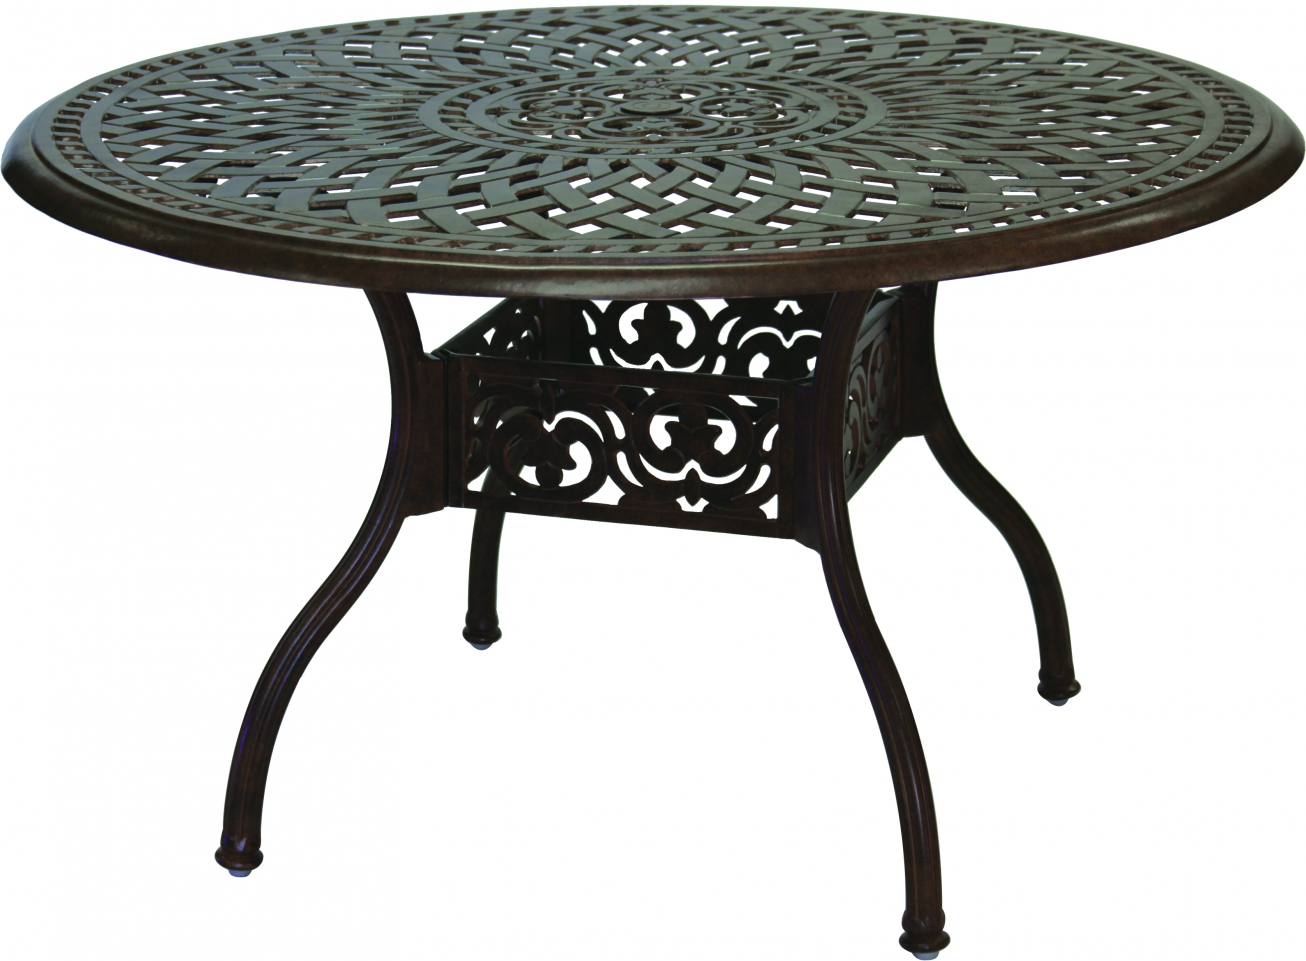 Series 60 Tables